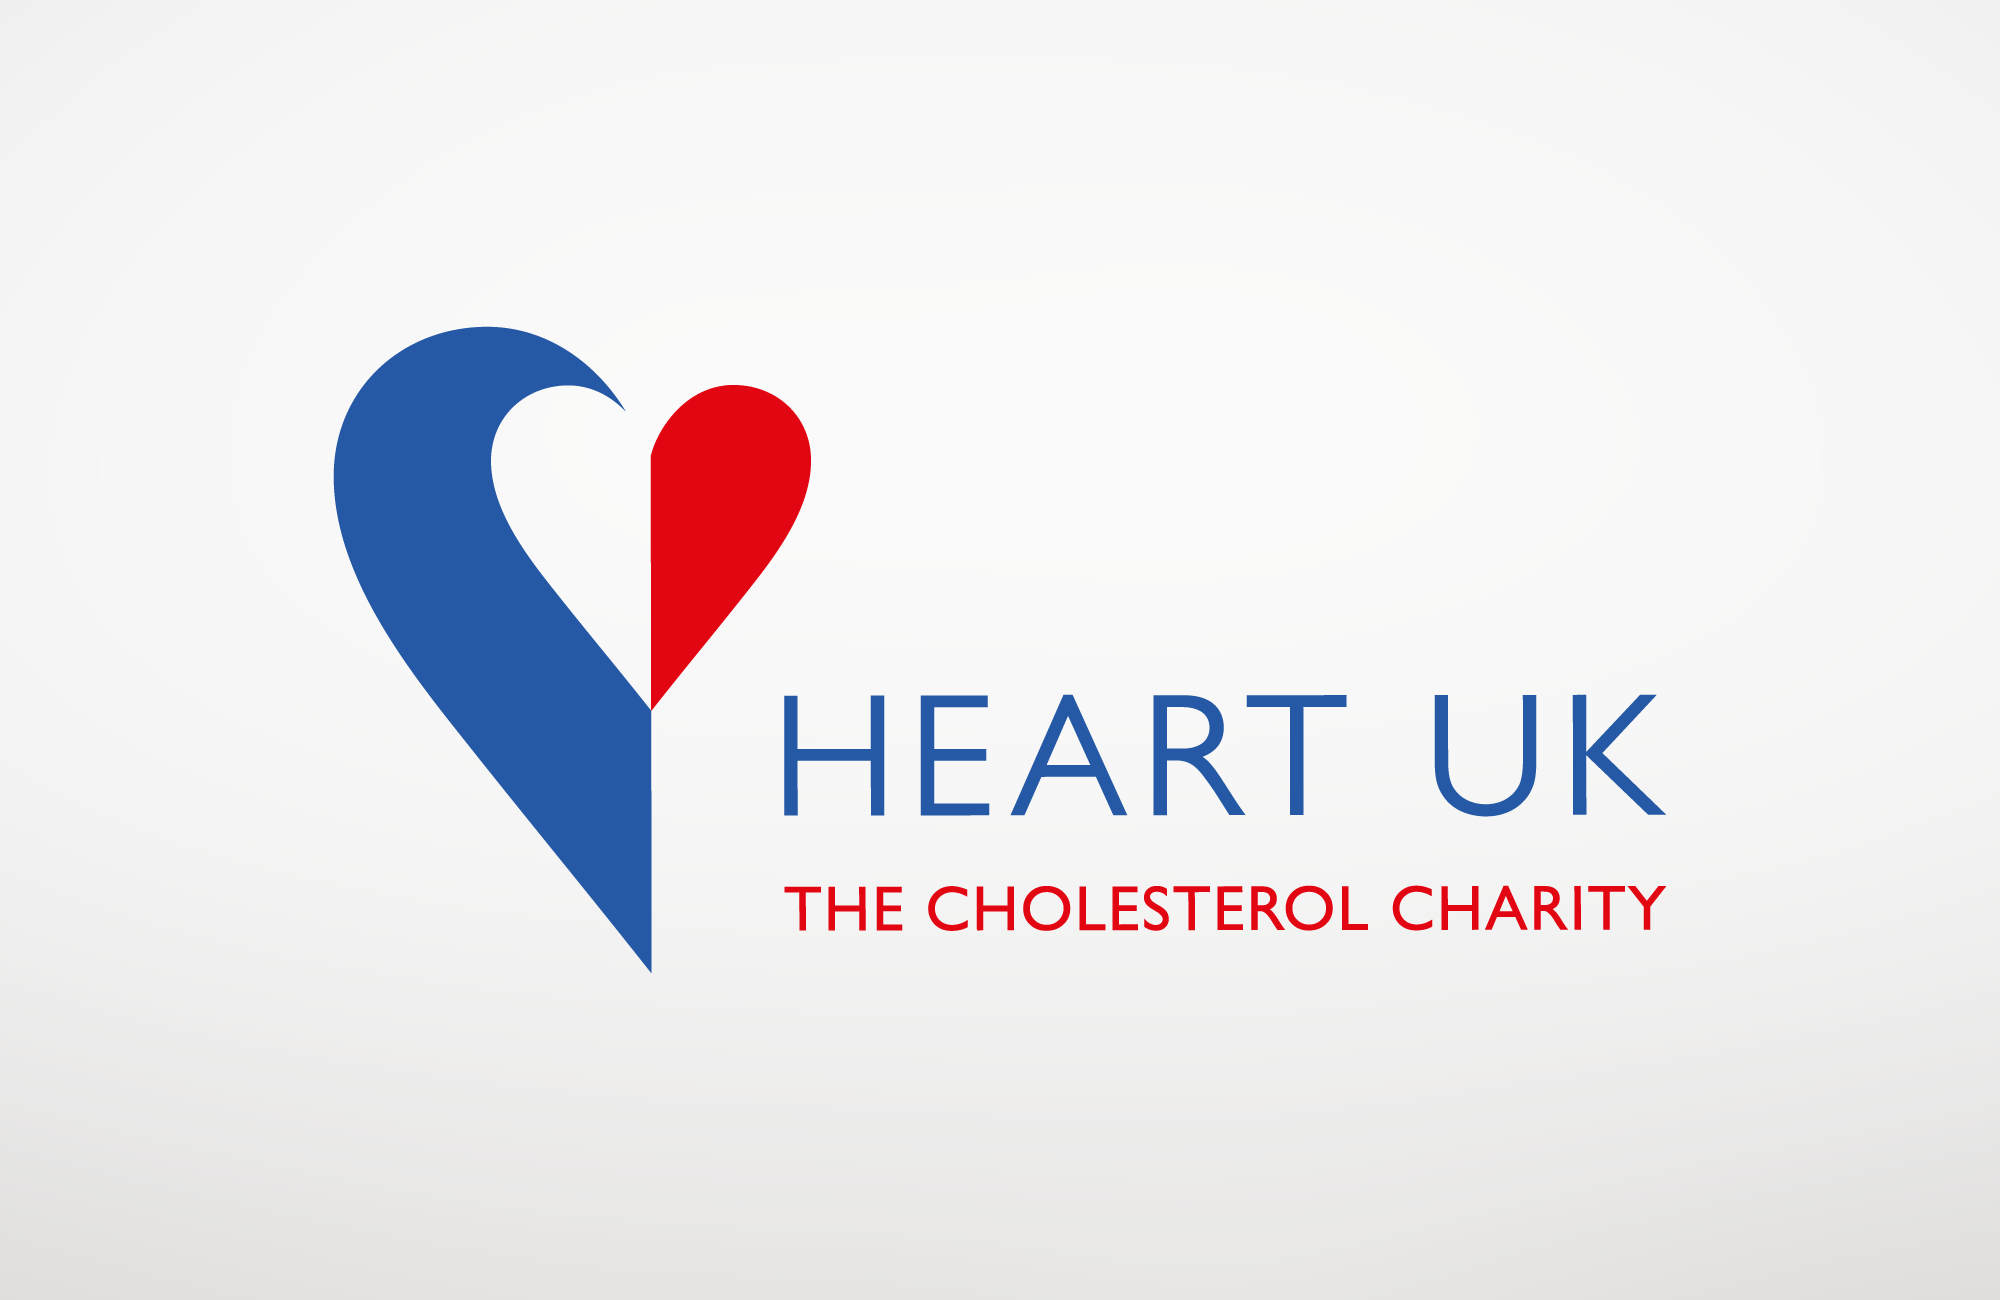 Heart UK – The Cholesterol Charity